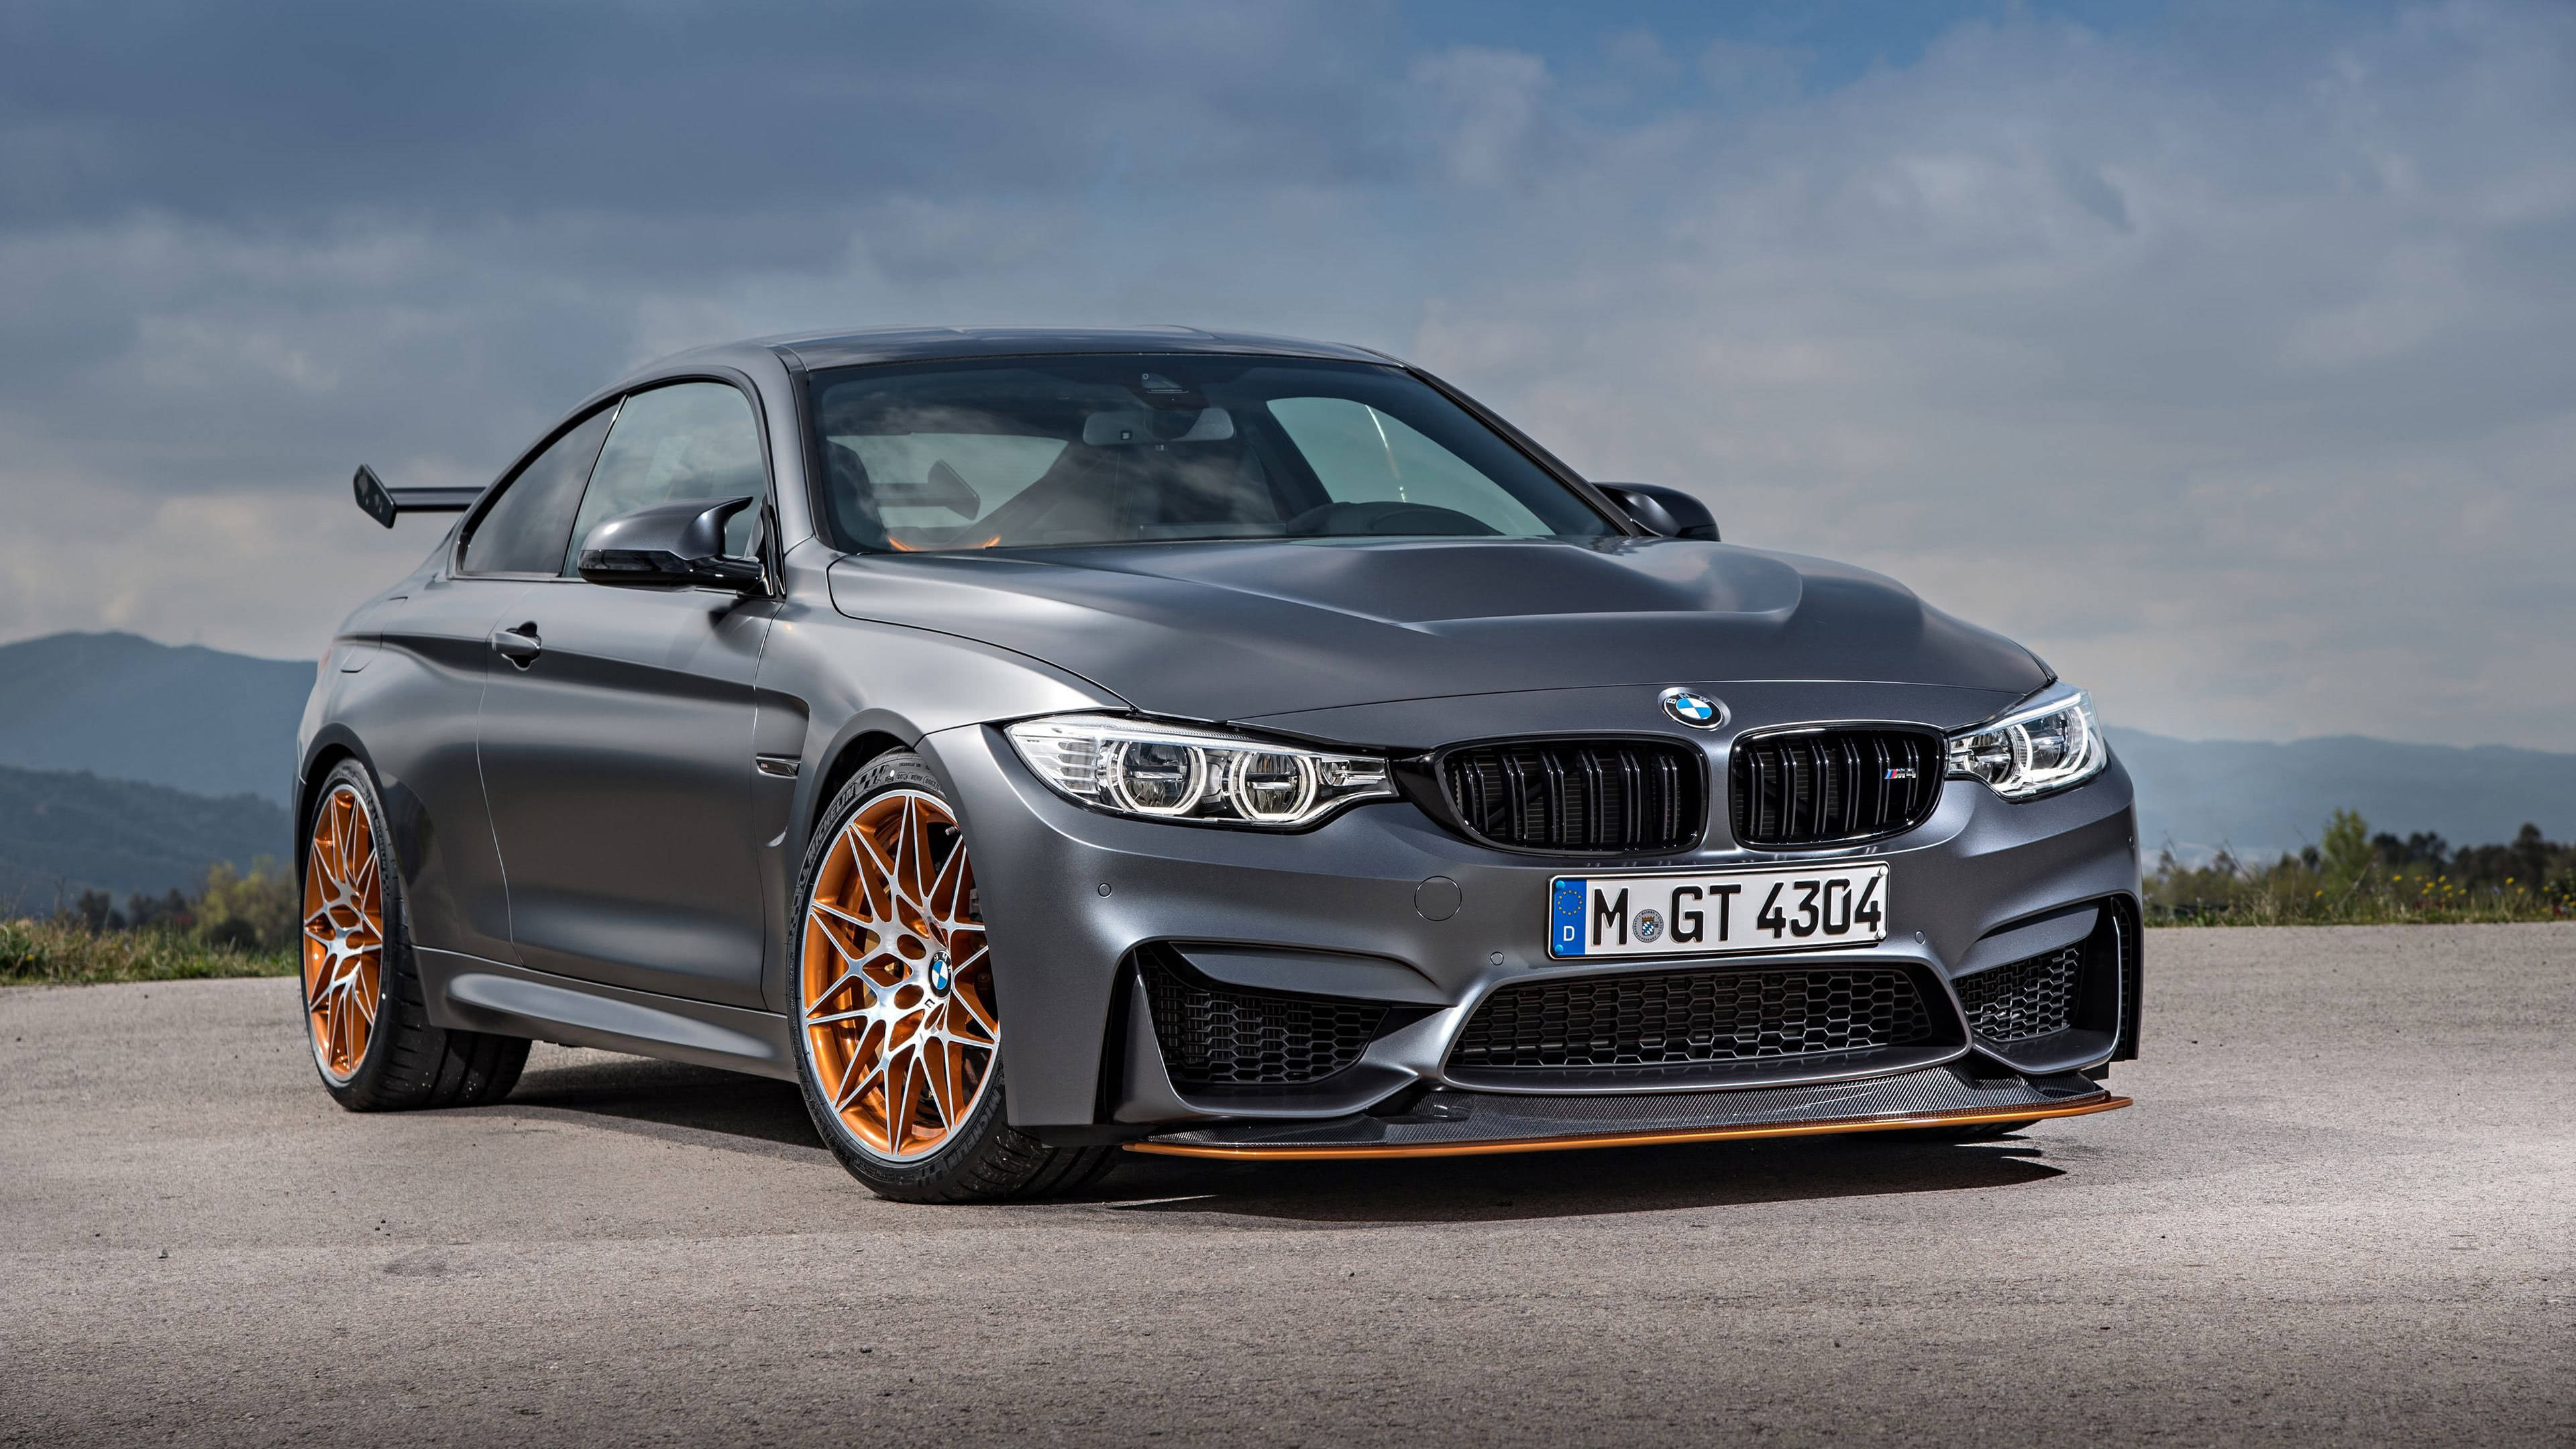 Topic For Bmw M4 Wallpapers Free Download 2013 Bmw M4 Wallpaper 1920x1080 Wallpapers For Widescreen Desktop Pc Full Hd Black Coupe G Power F8x Wallpapers Cityconnectapps